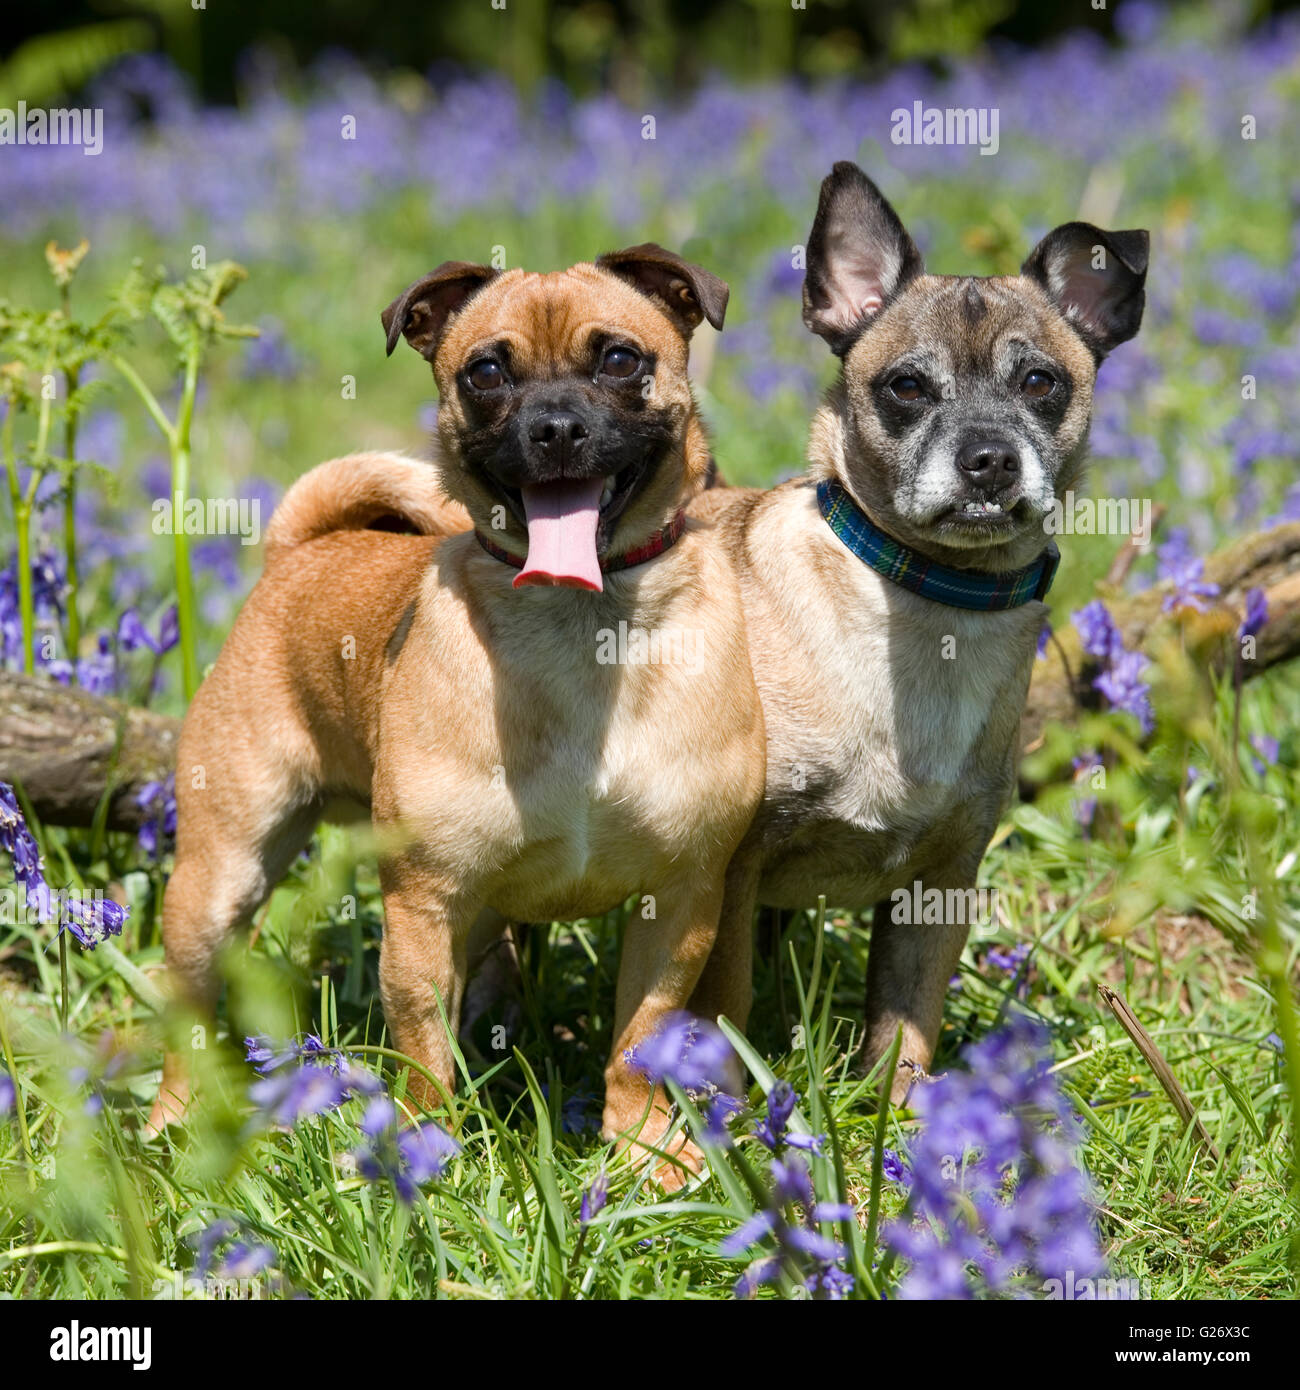 two pug x jack russell dogs in bluebells - Stock Image